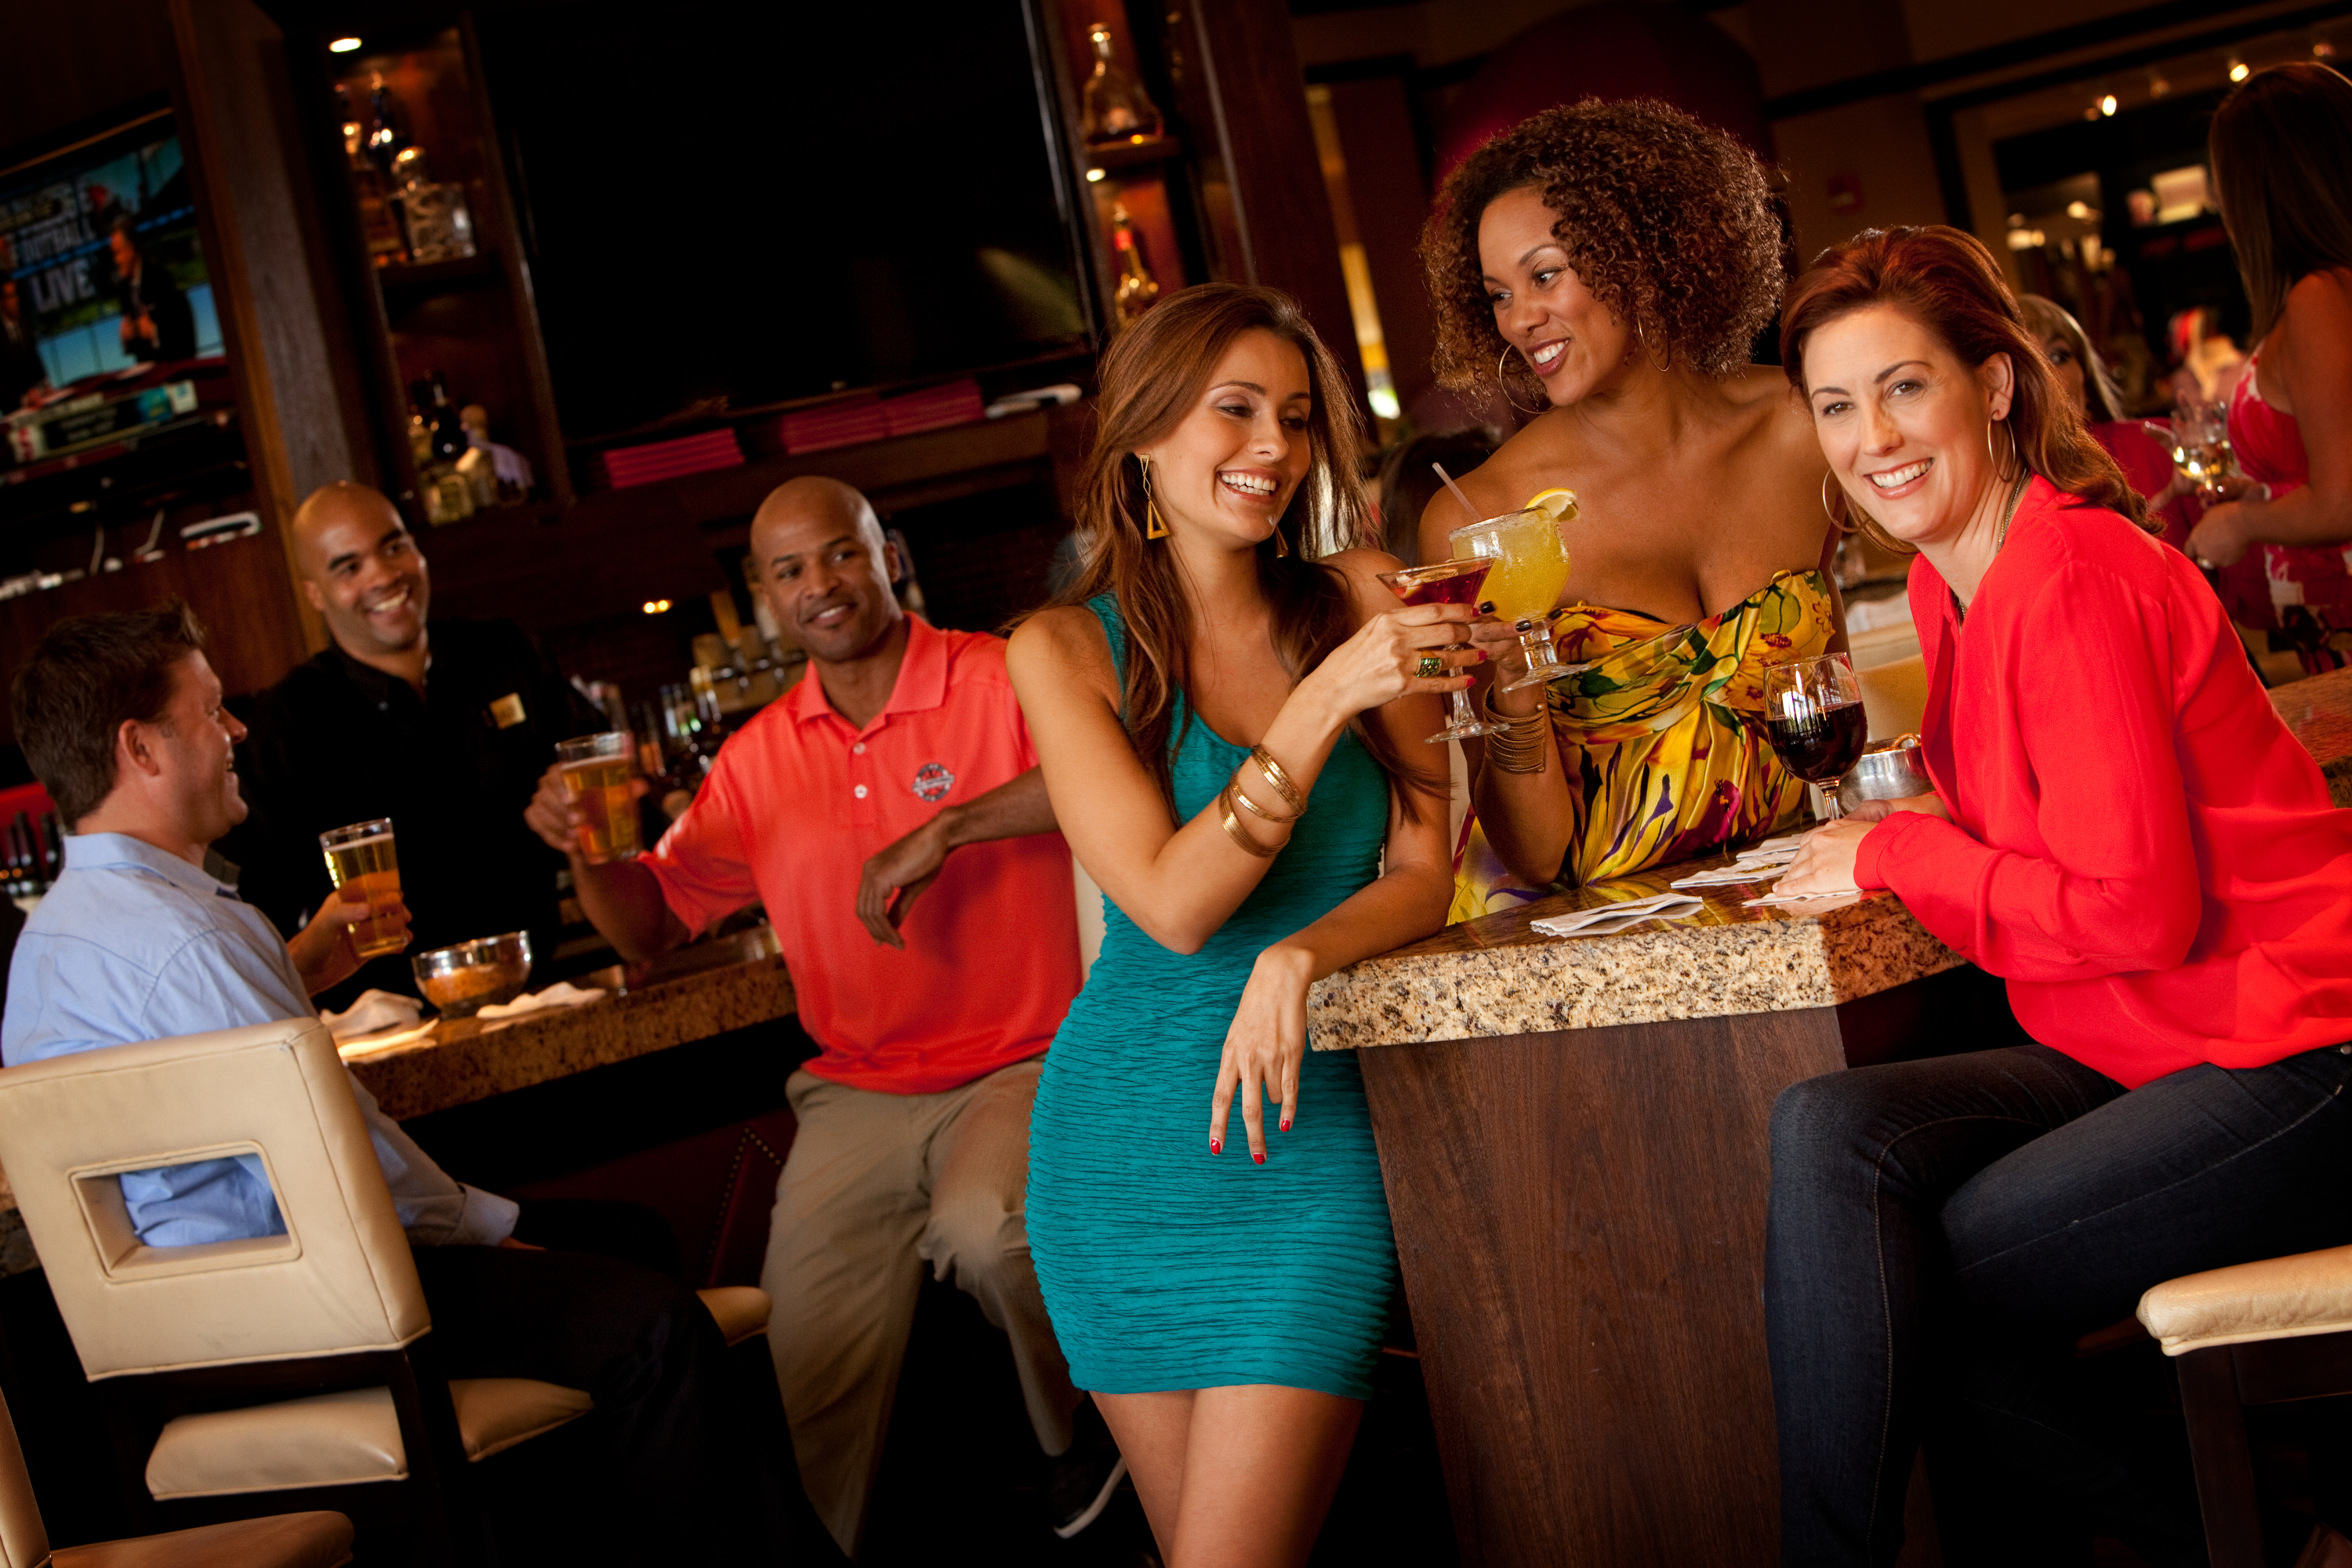 Best hookup bars chicago